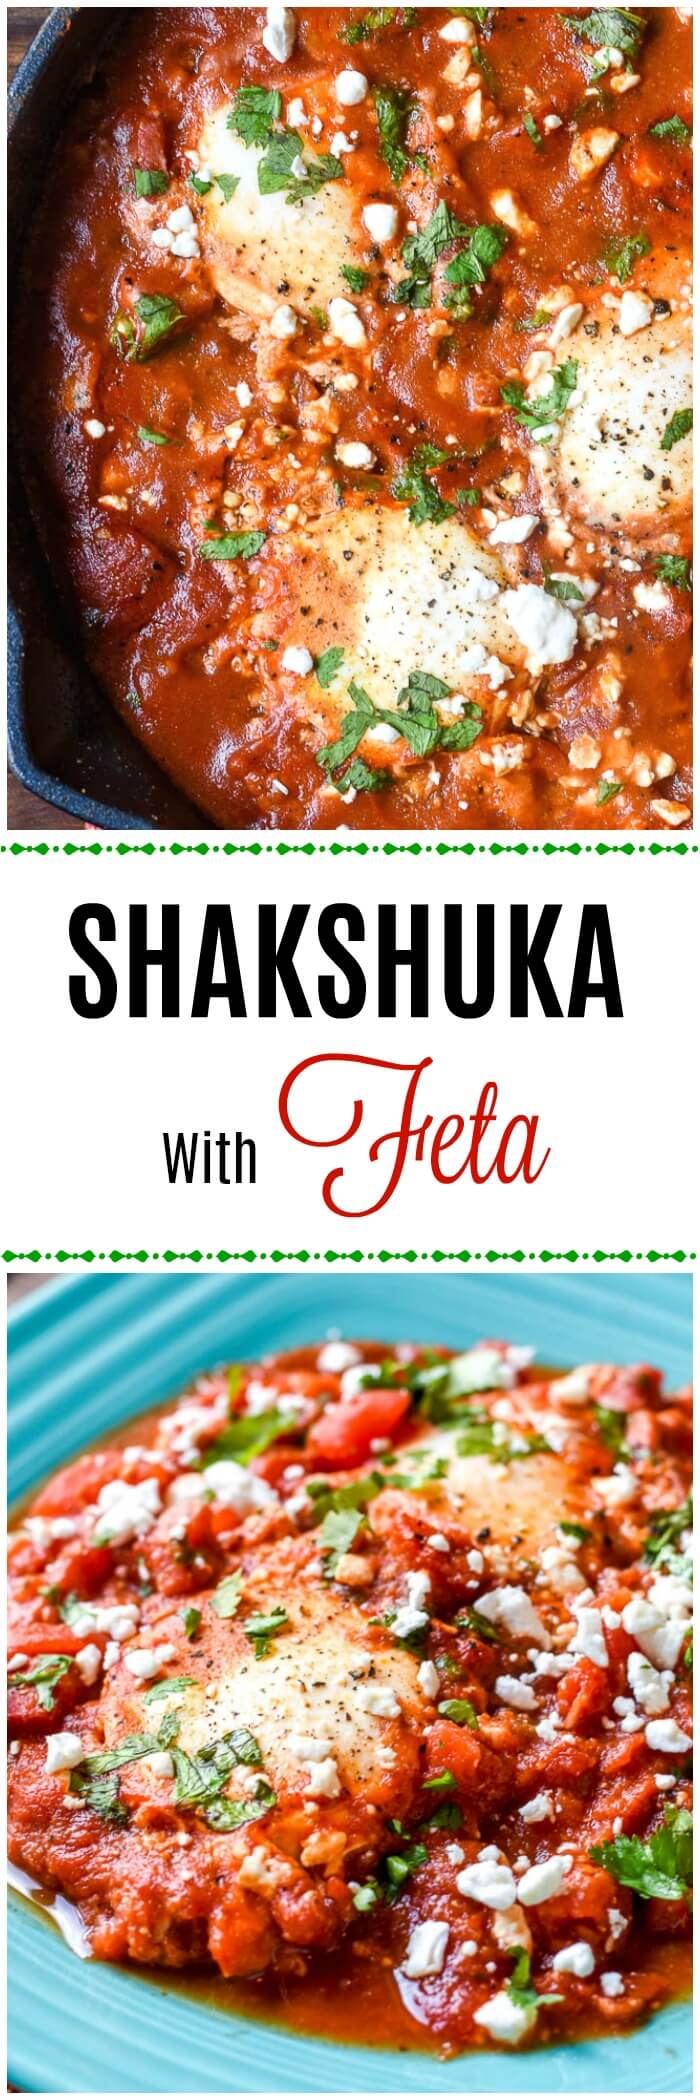 Shakshuka with Feta - Mediterranean Breakfast with eggs in a spicy tomato sauce